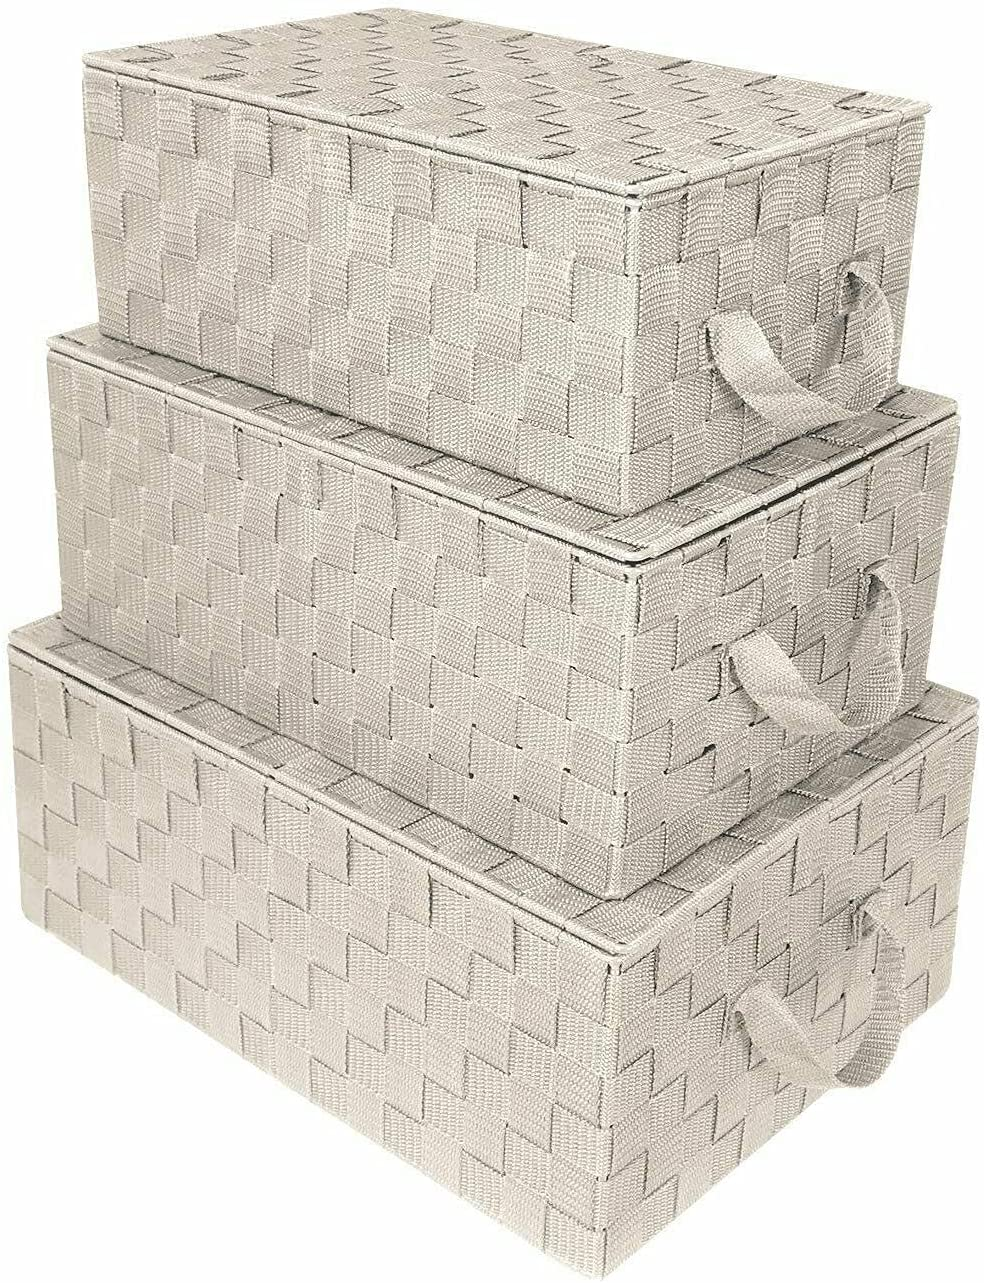 HUIJK Storage Selling Box Woven Lid Basket Tote Cube Stack Bin Container mart